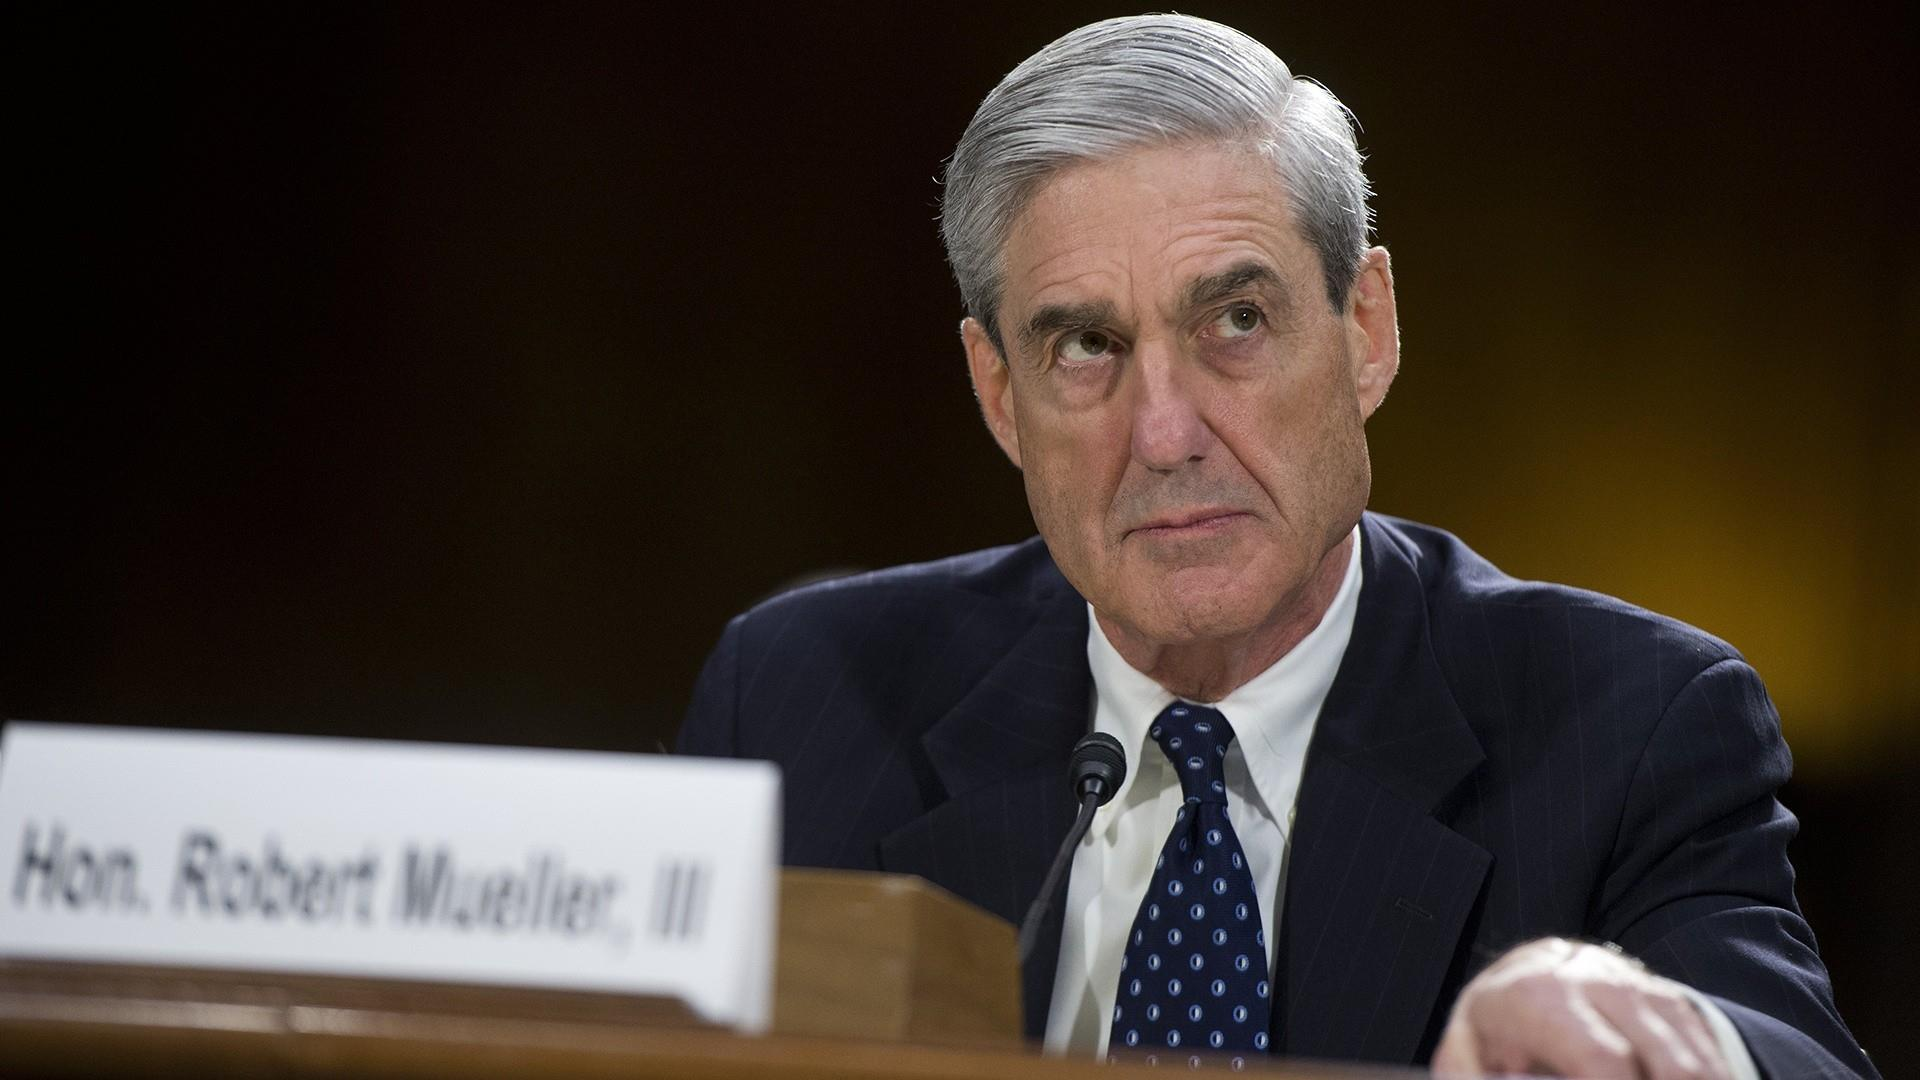 Mueller due to present Russia report as early as next week